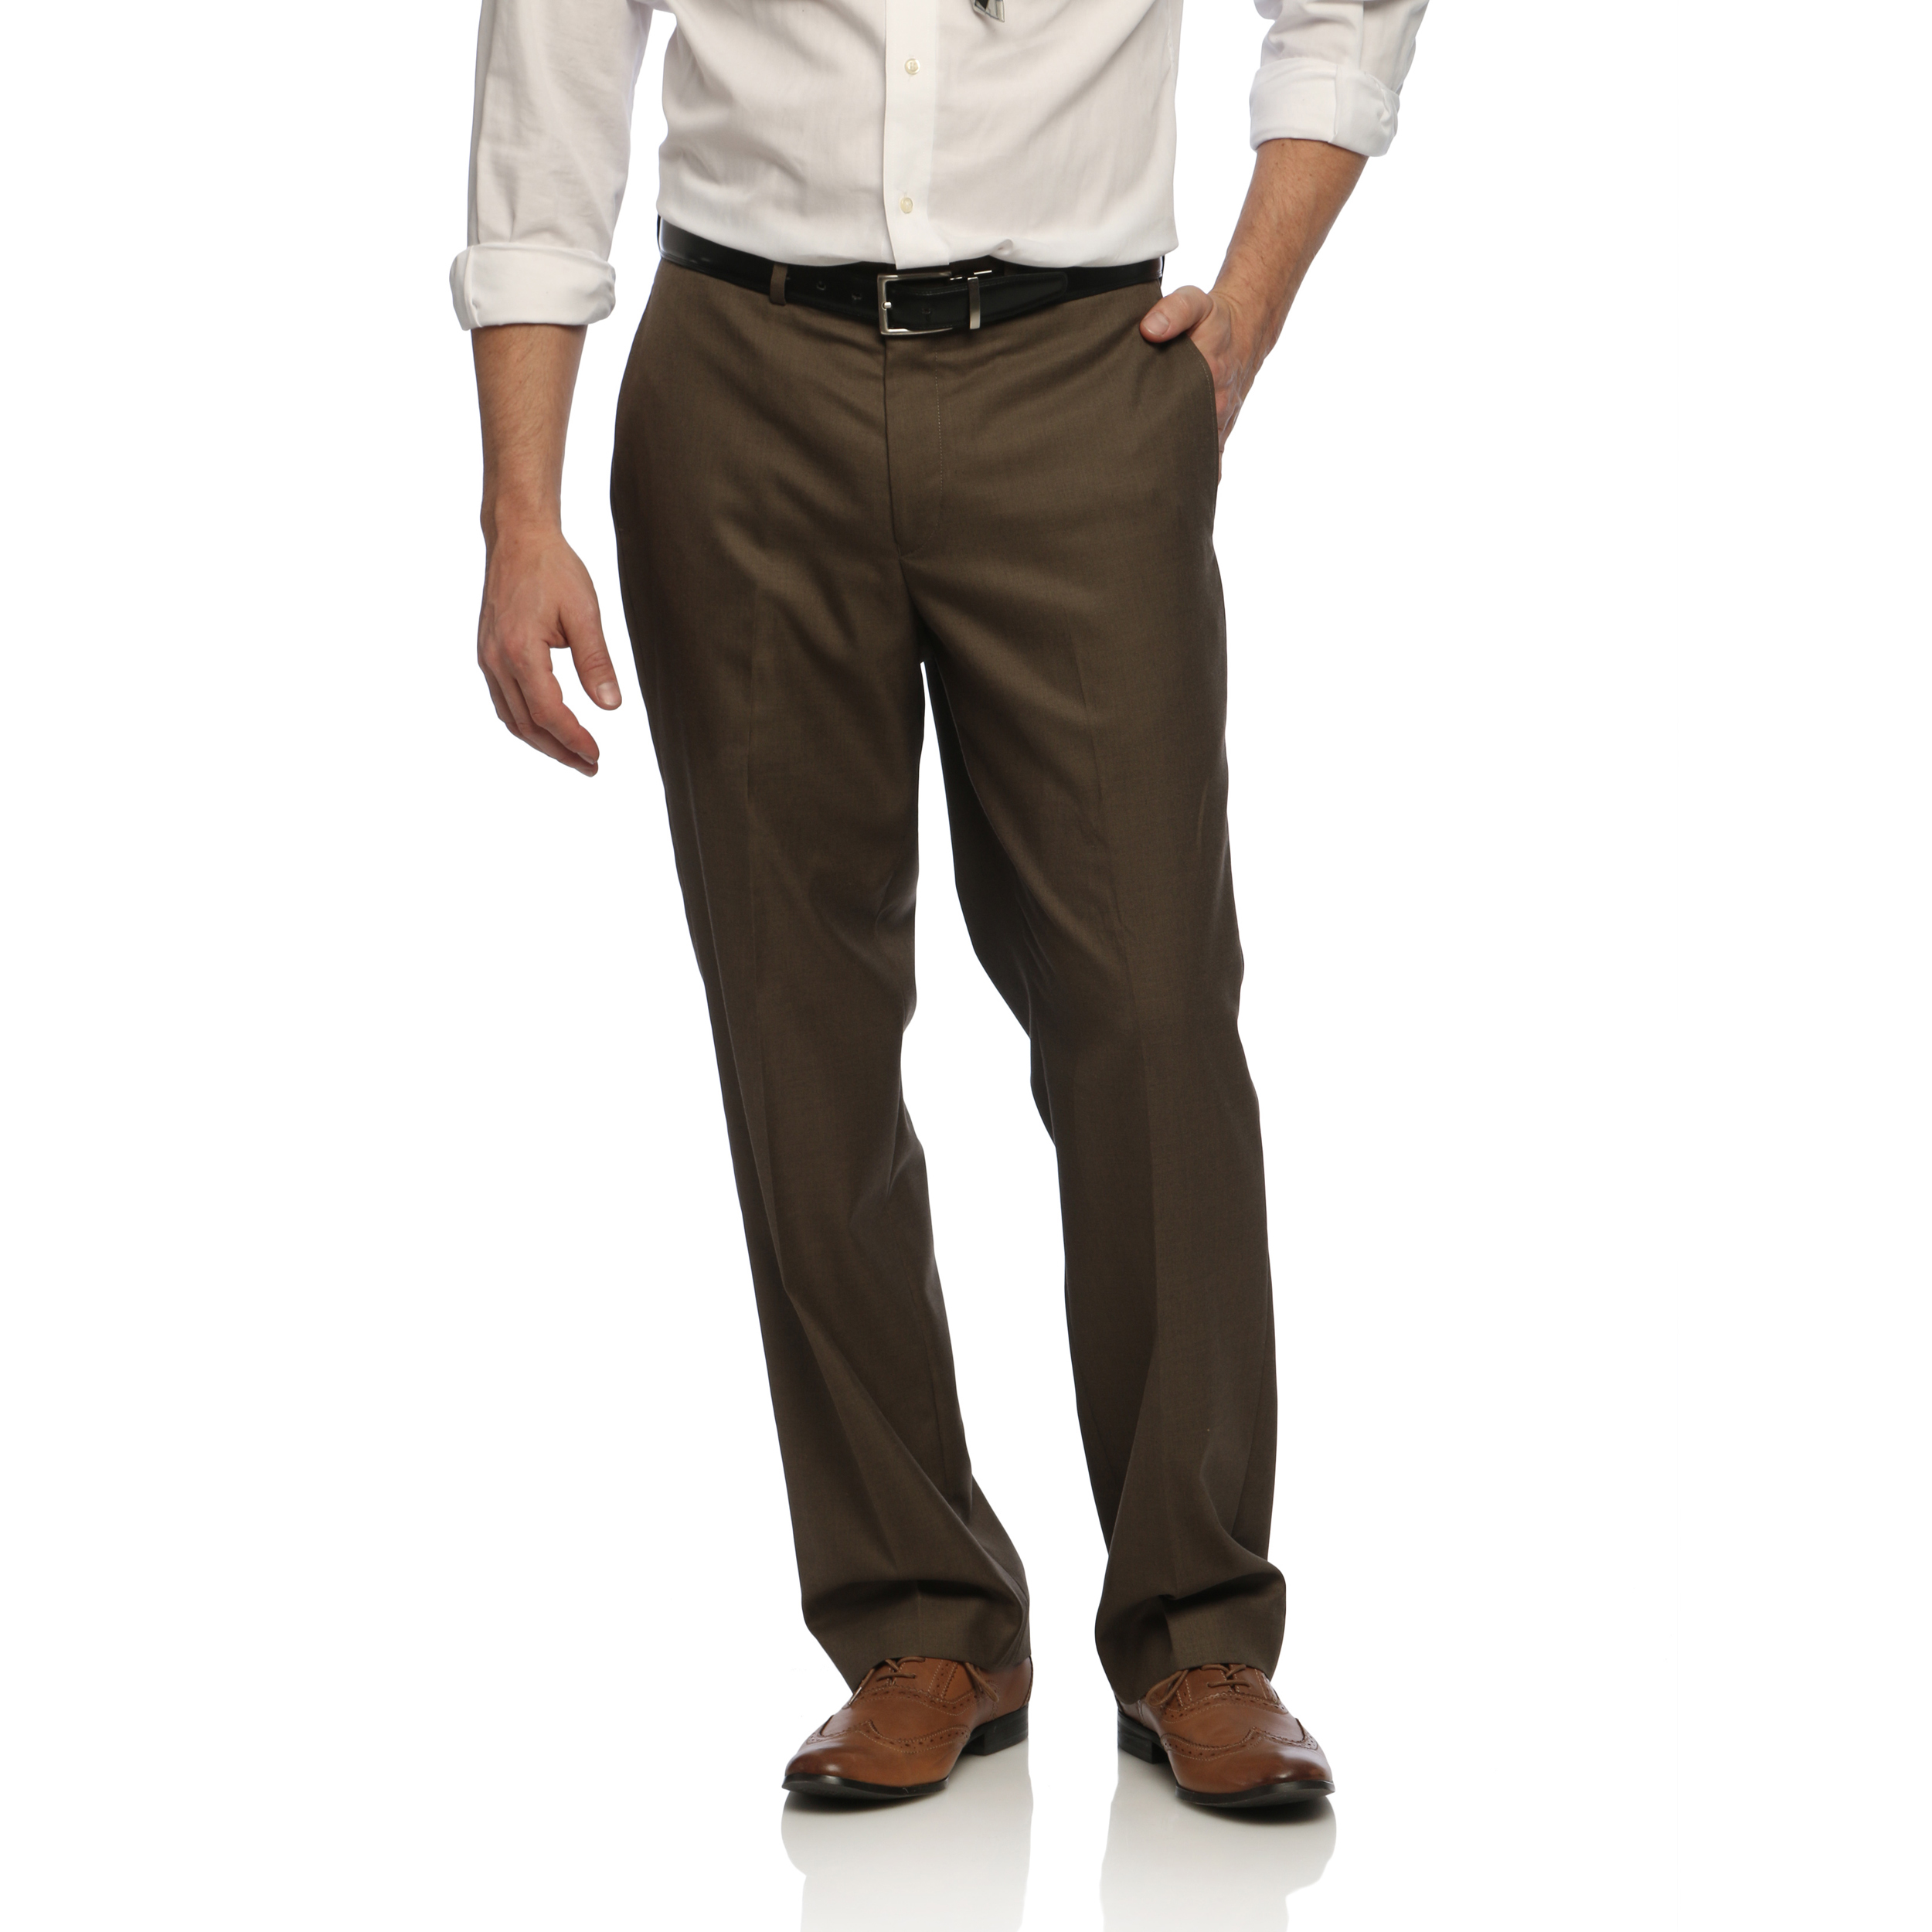 Similiar What Color To Wear With Pants Brown Shoes Keywords